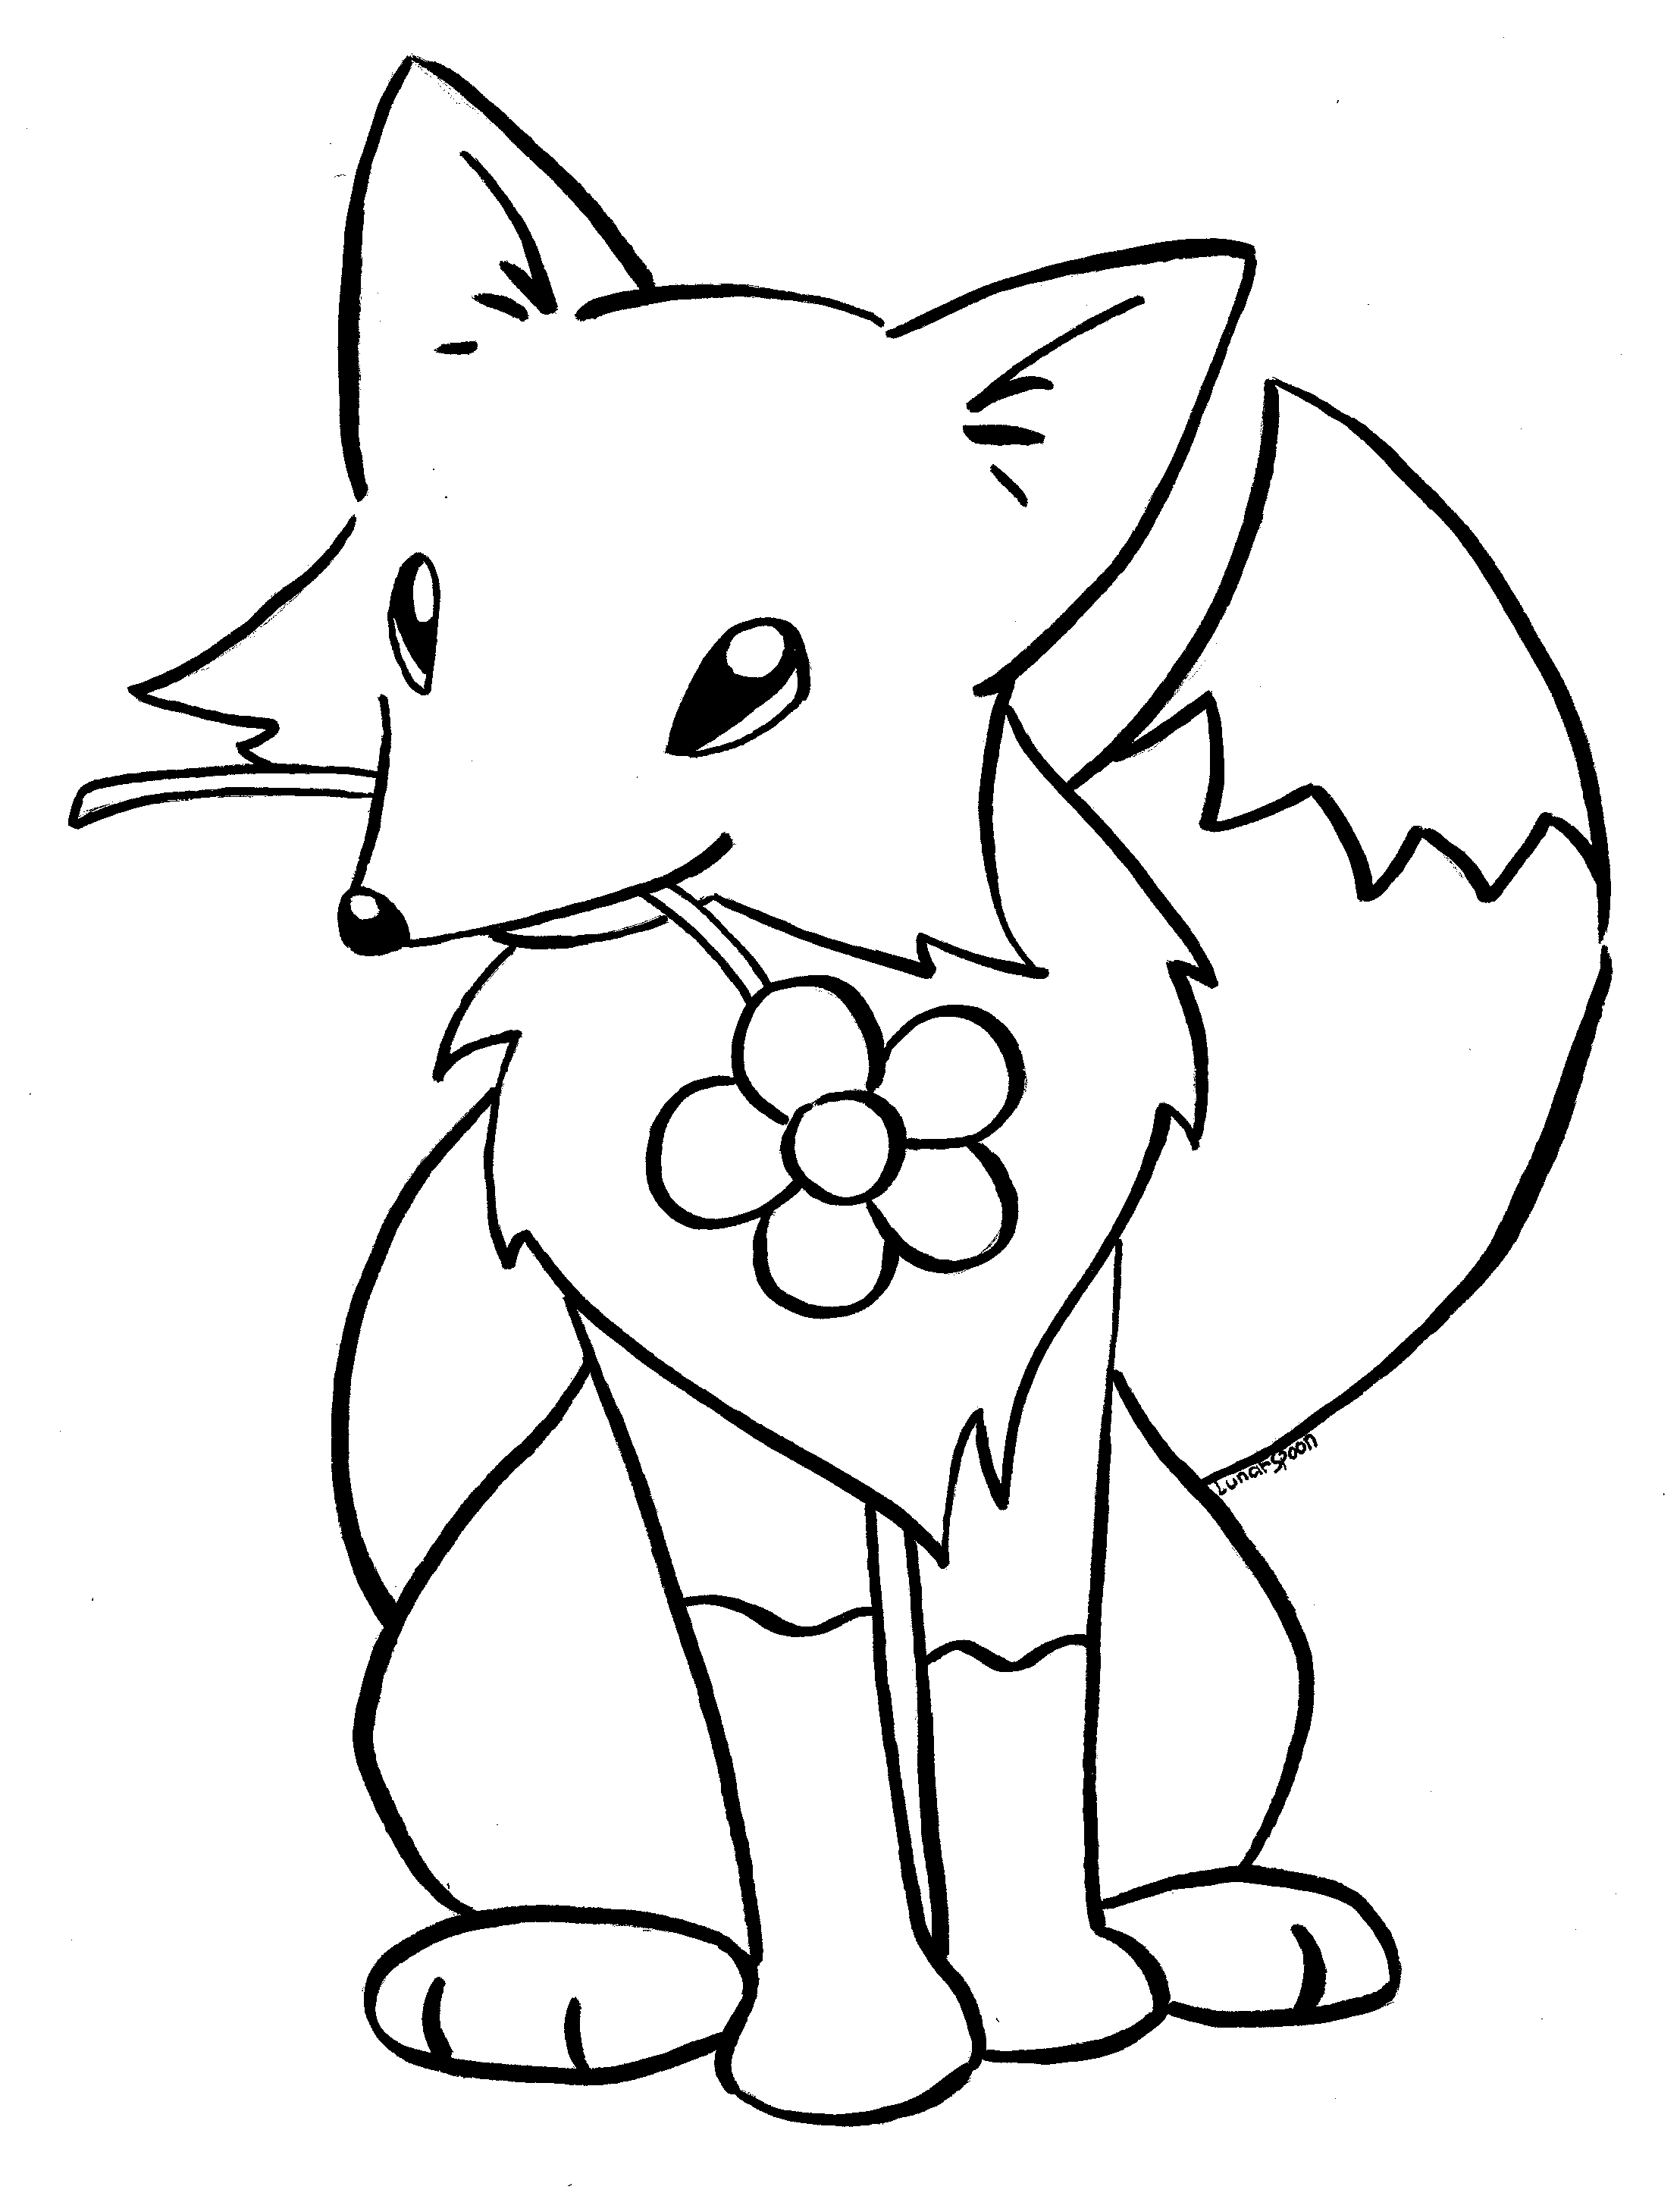 10 Pics of Dapper Fox Animal Coloring Pages - Preschool Fox ...